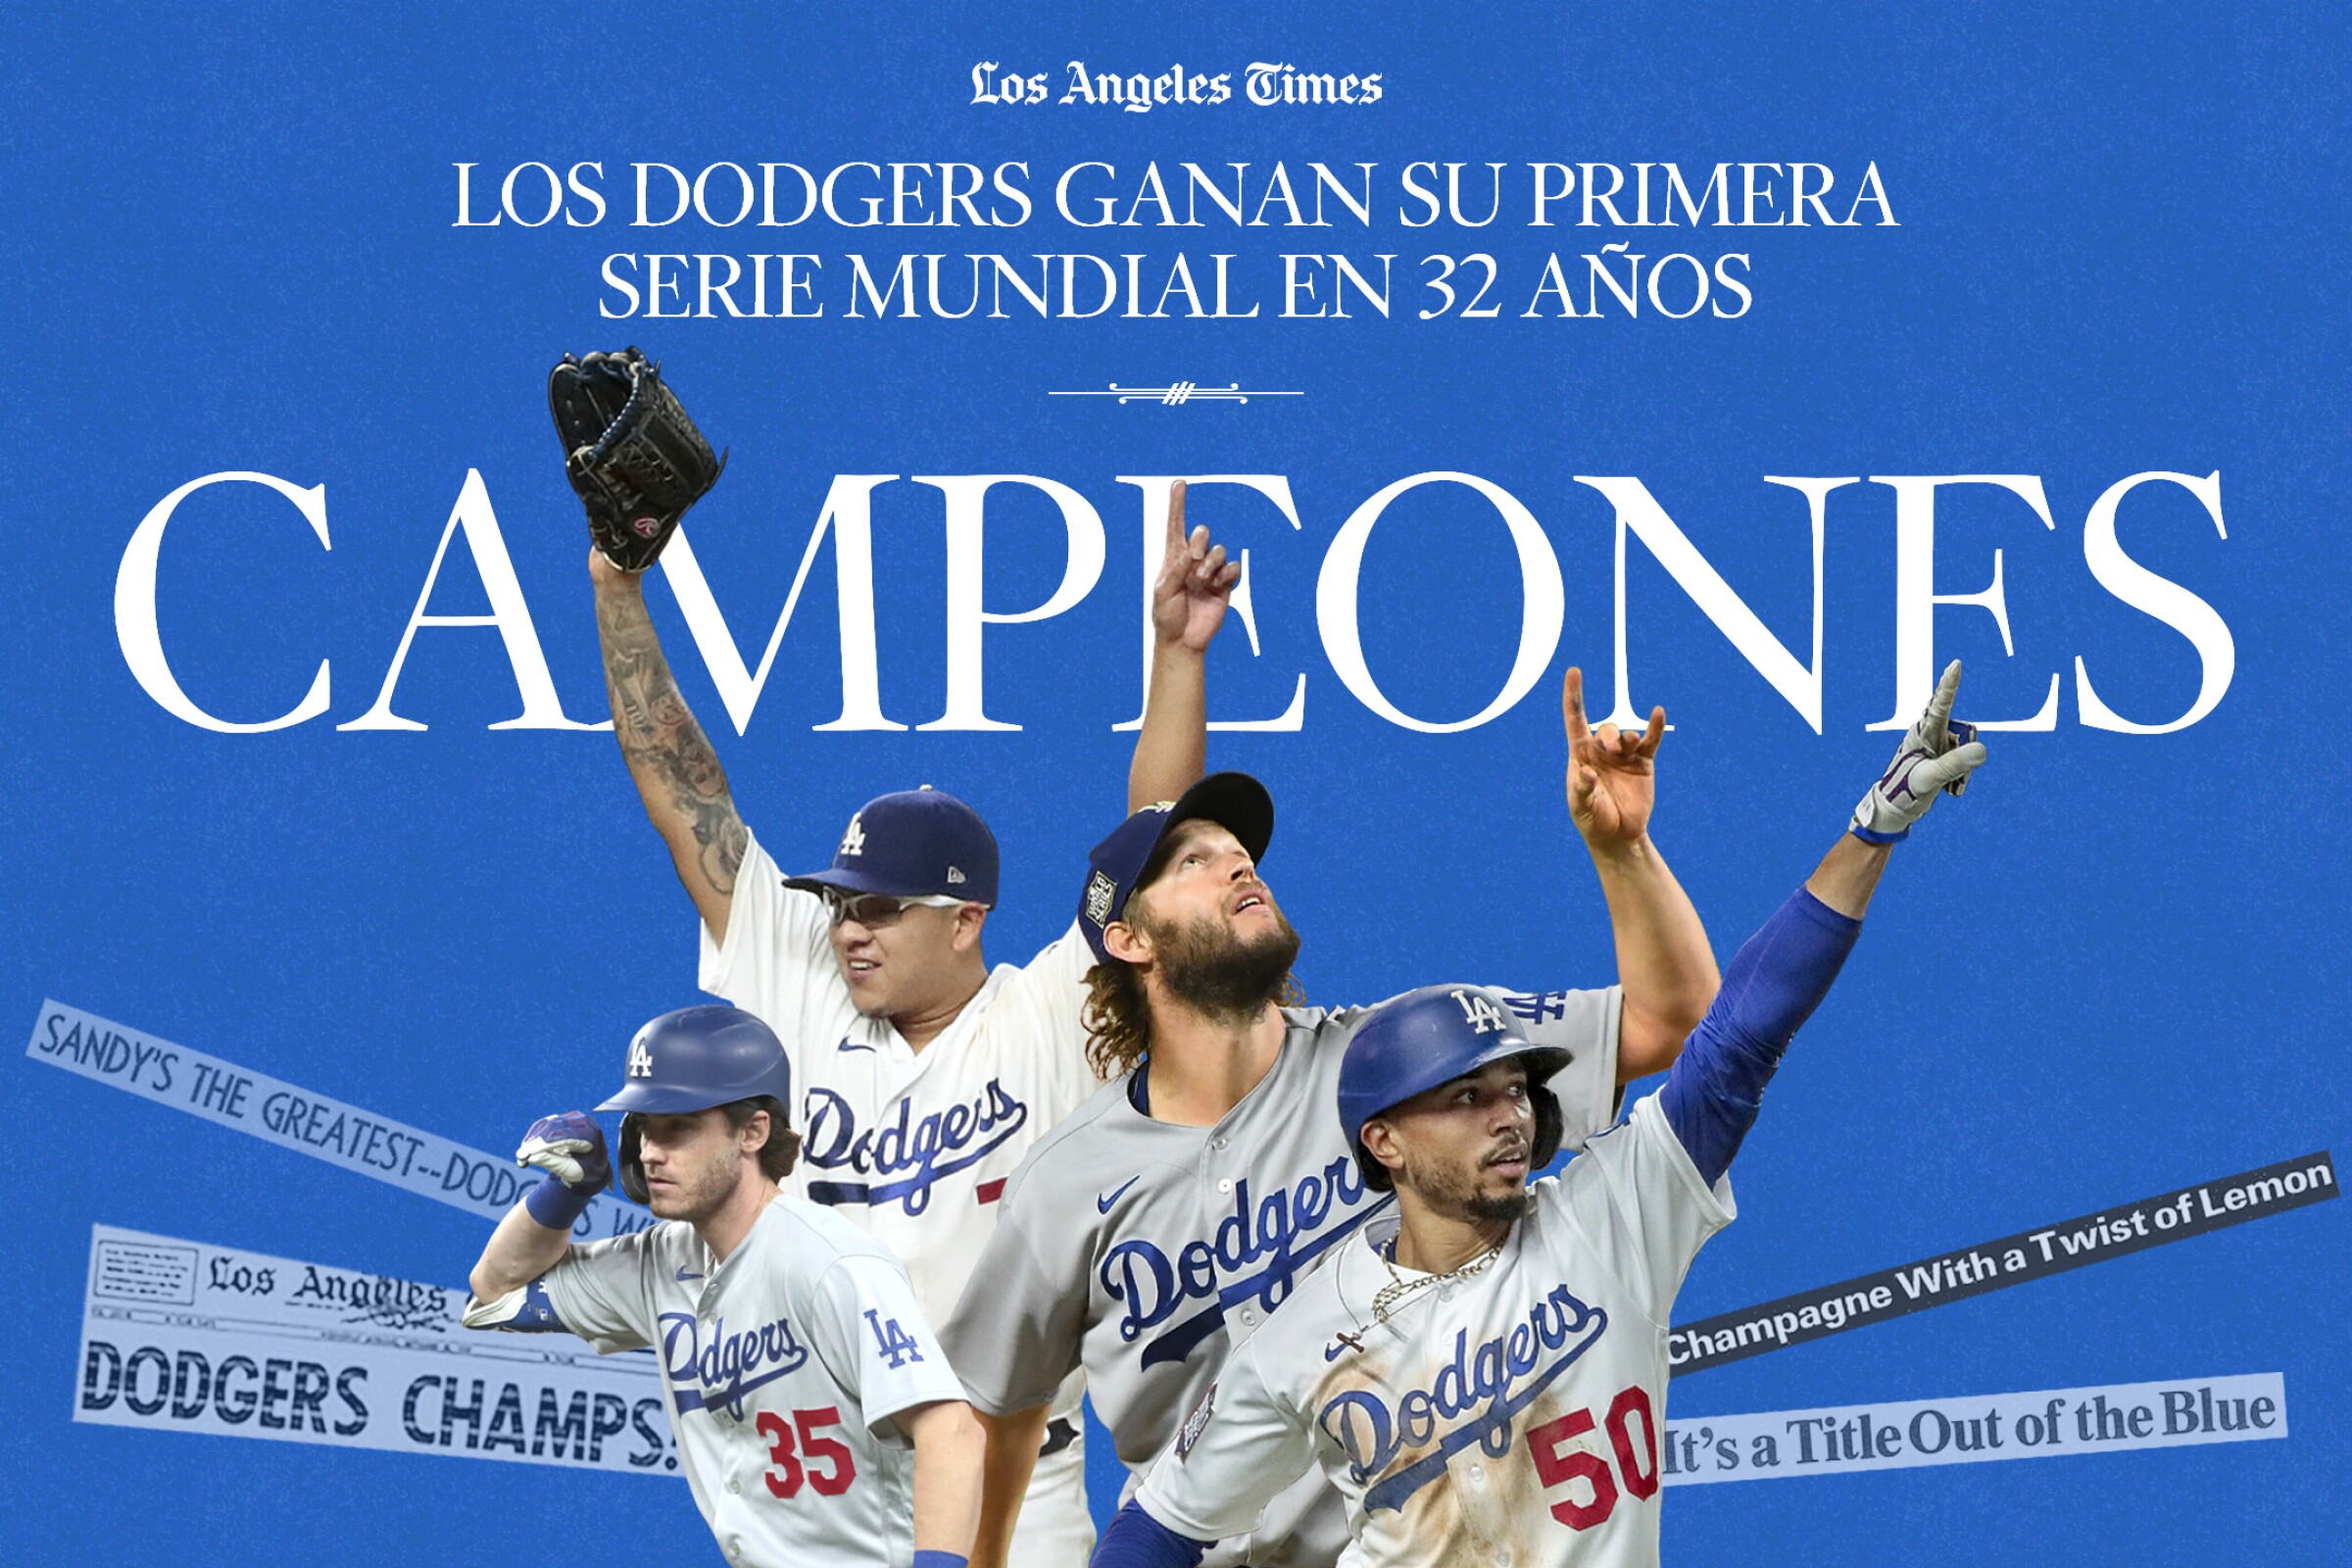 Dodgers players celebrate te World Campionship against the Rays in Game 6 of the World Series.